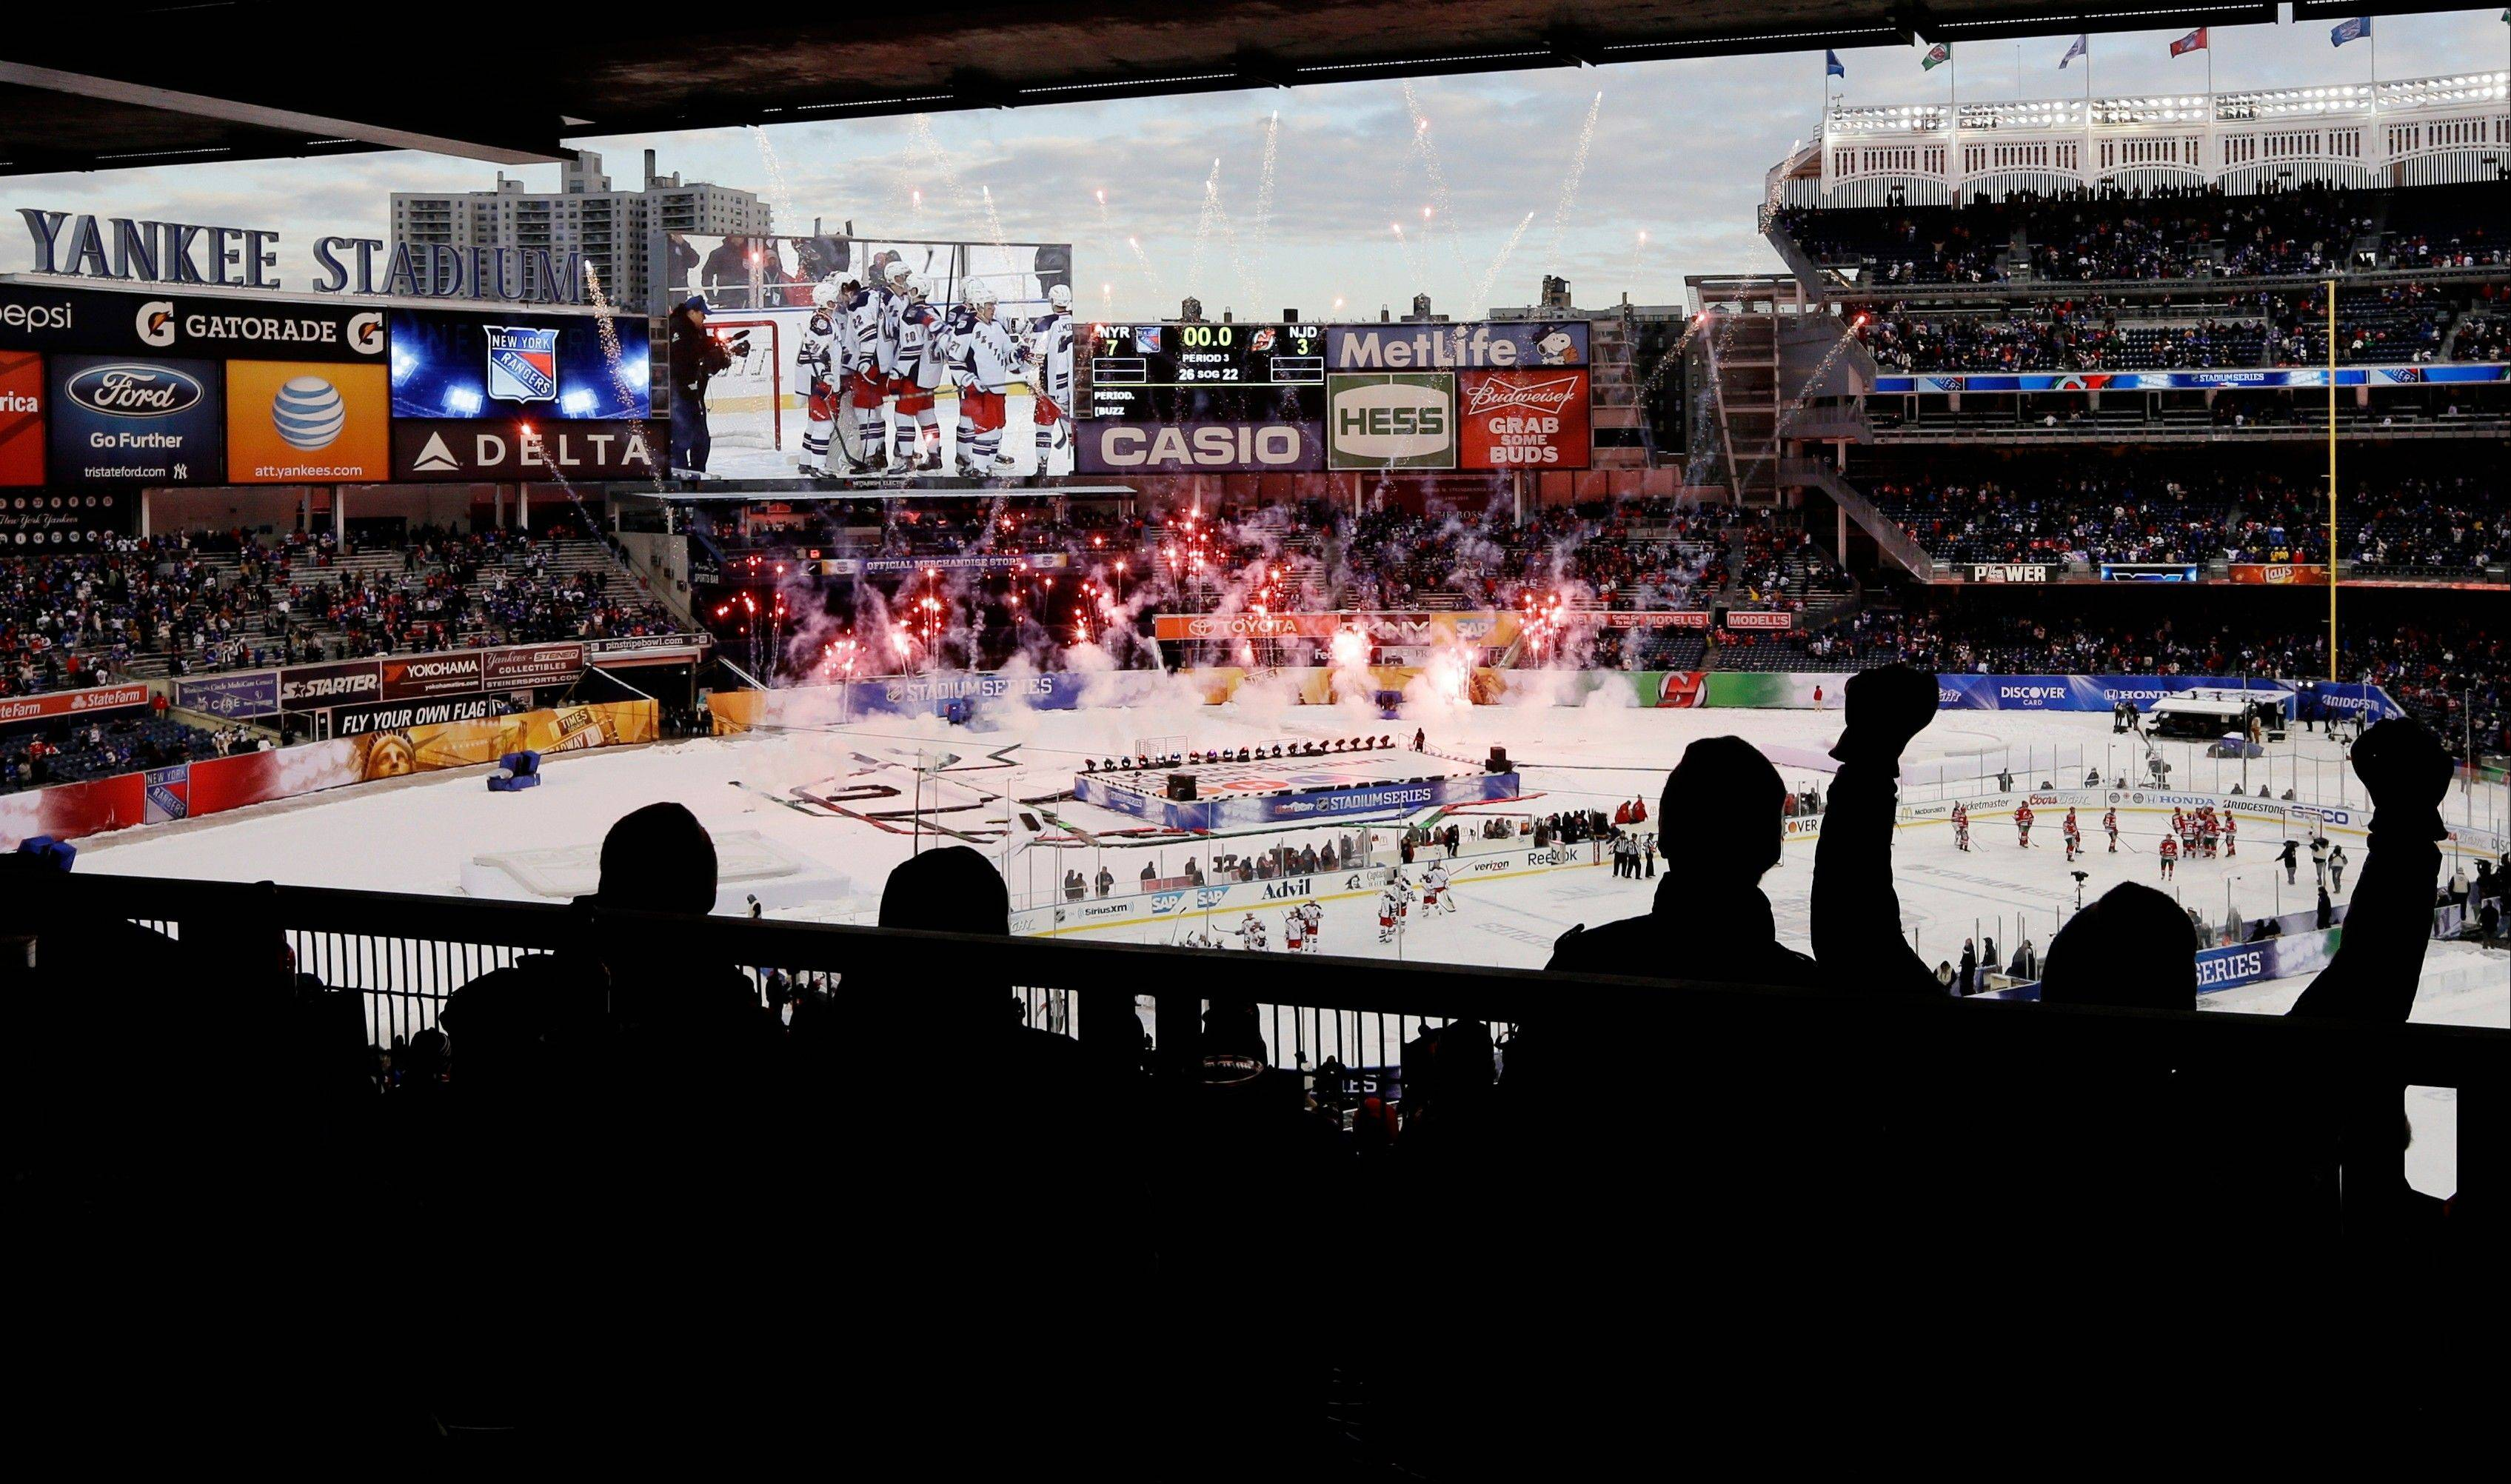 New York Rangers fans cheer during a pyrotechnics display after an outdoor NHL hockey game against the New Jersey Devils Sunday, Jan. 26, 2014, at Yankee Stadium in New York. The Rangers won the game 7-3.